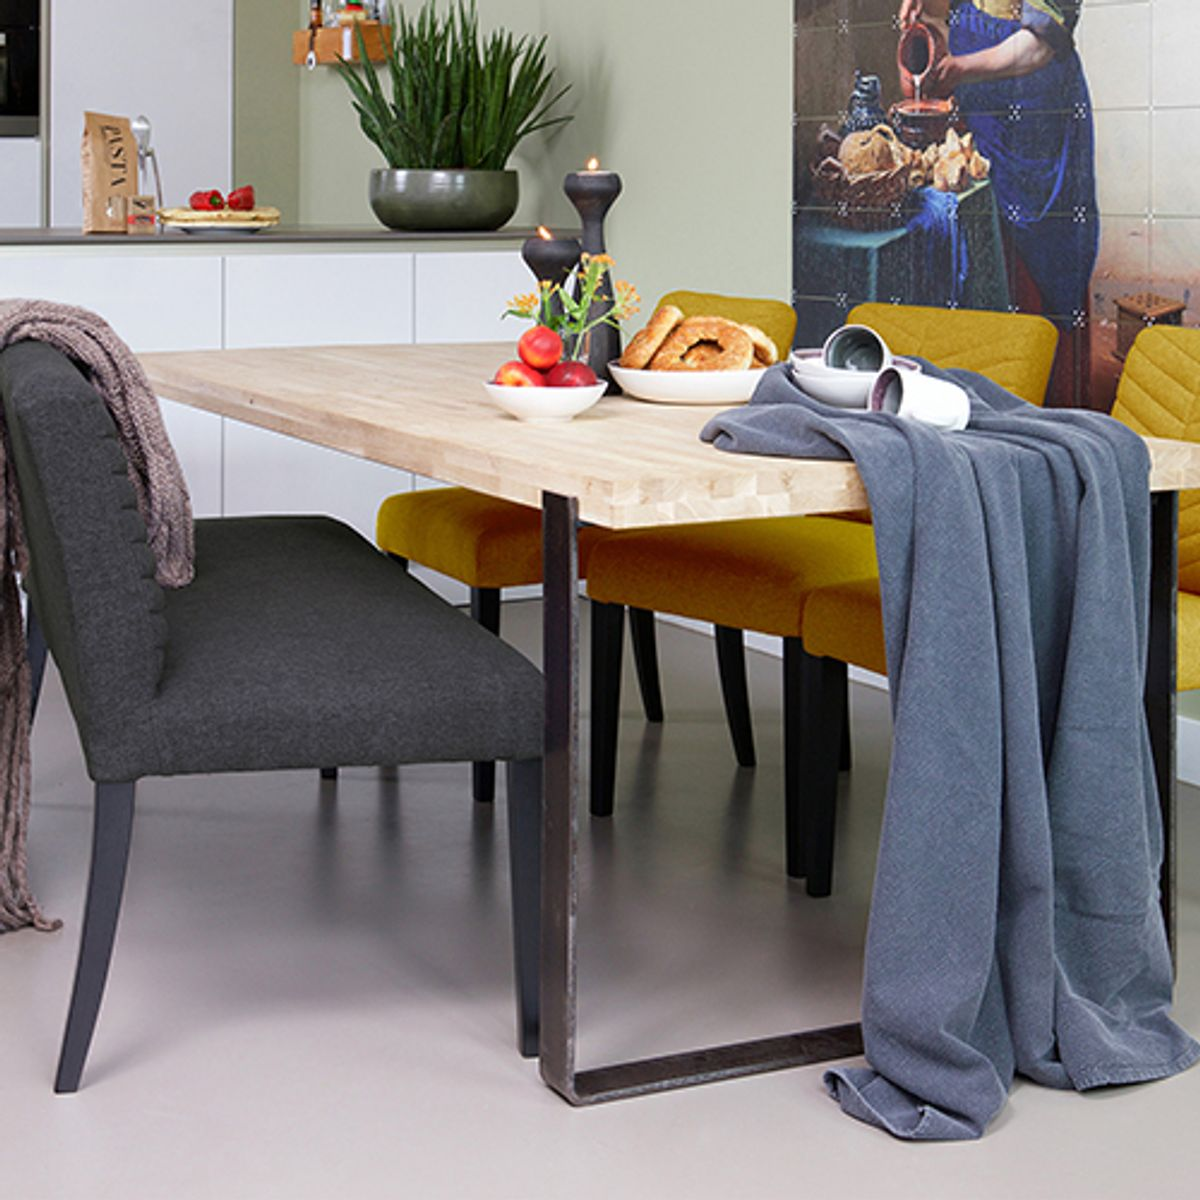 Banquette en tissu polyester couture chevrons Nora  - anthracite